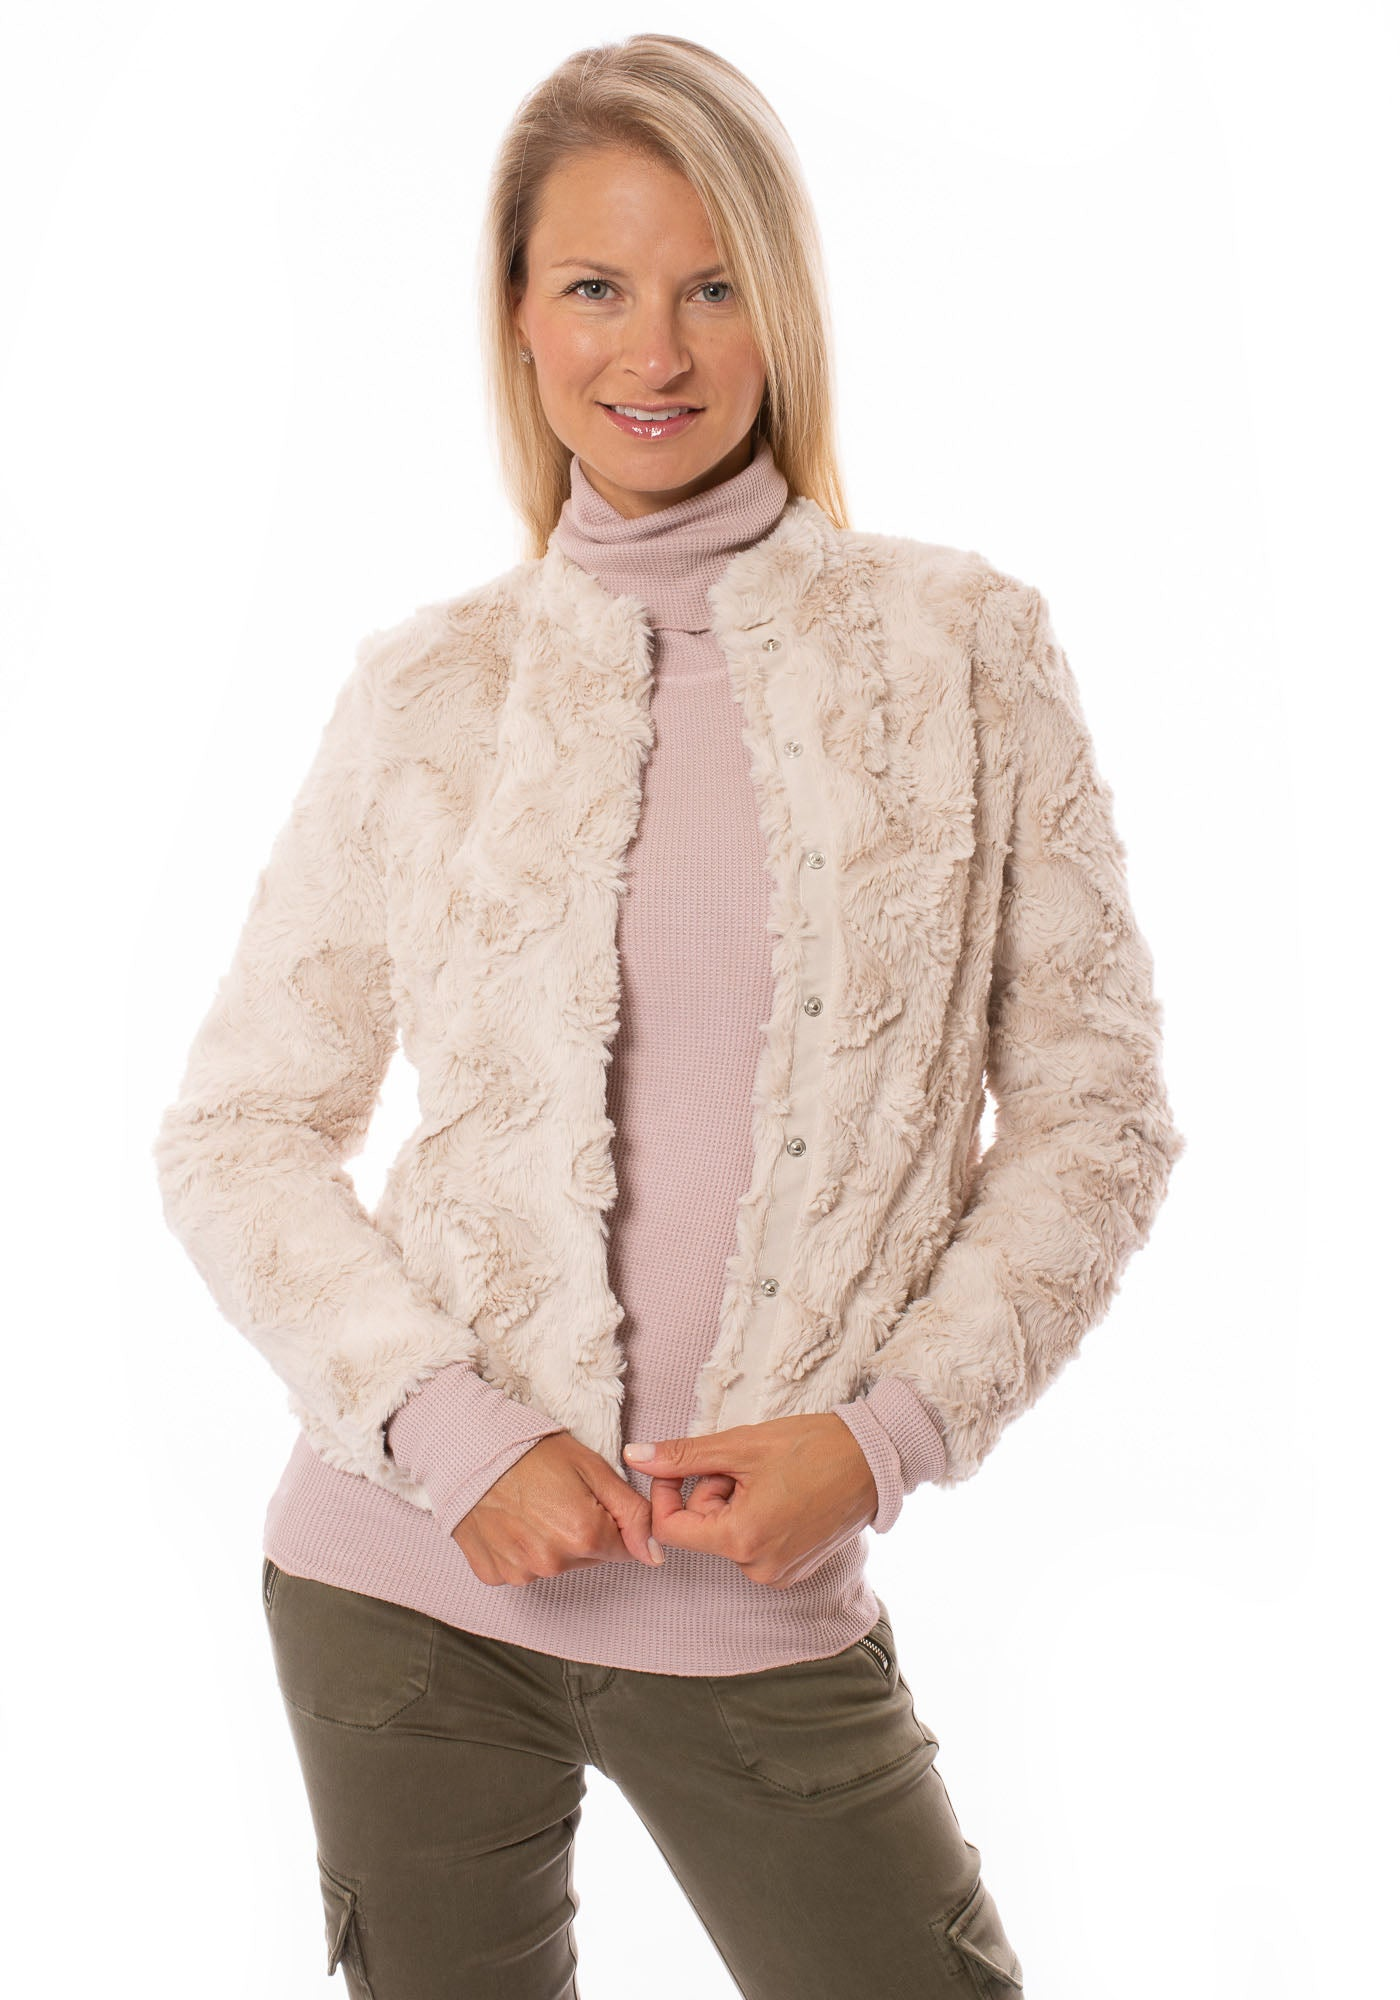 Tart Collections - Blaire 2 Faux Fur Bomber Jacket (U90288, Blush)